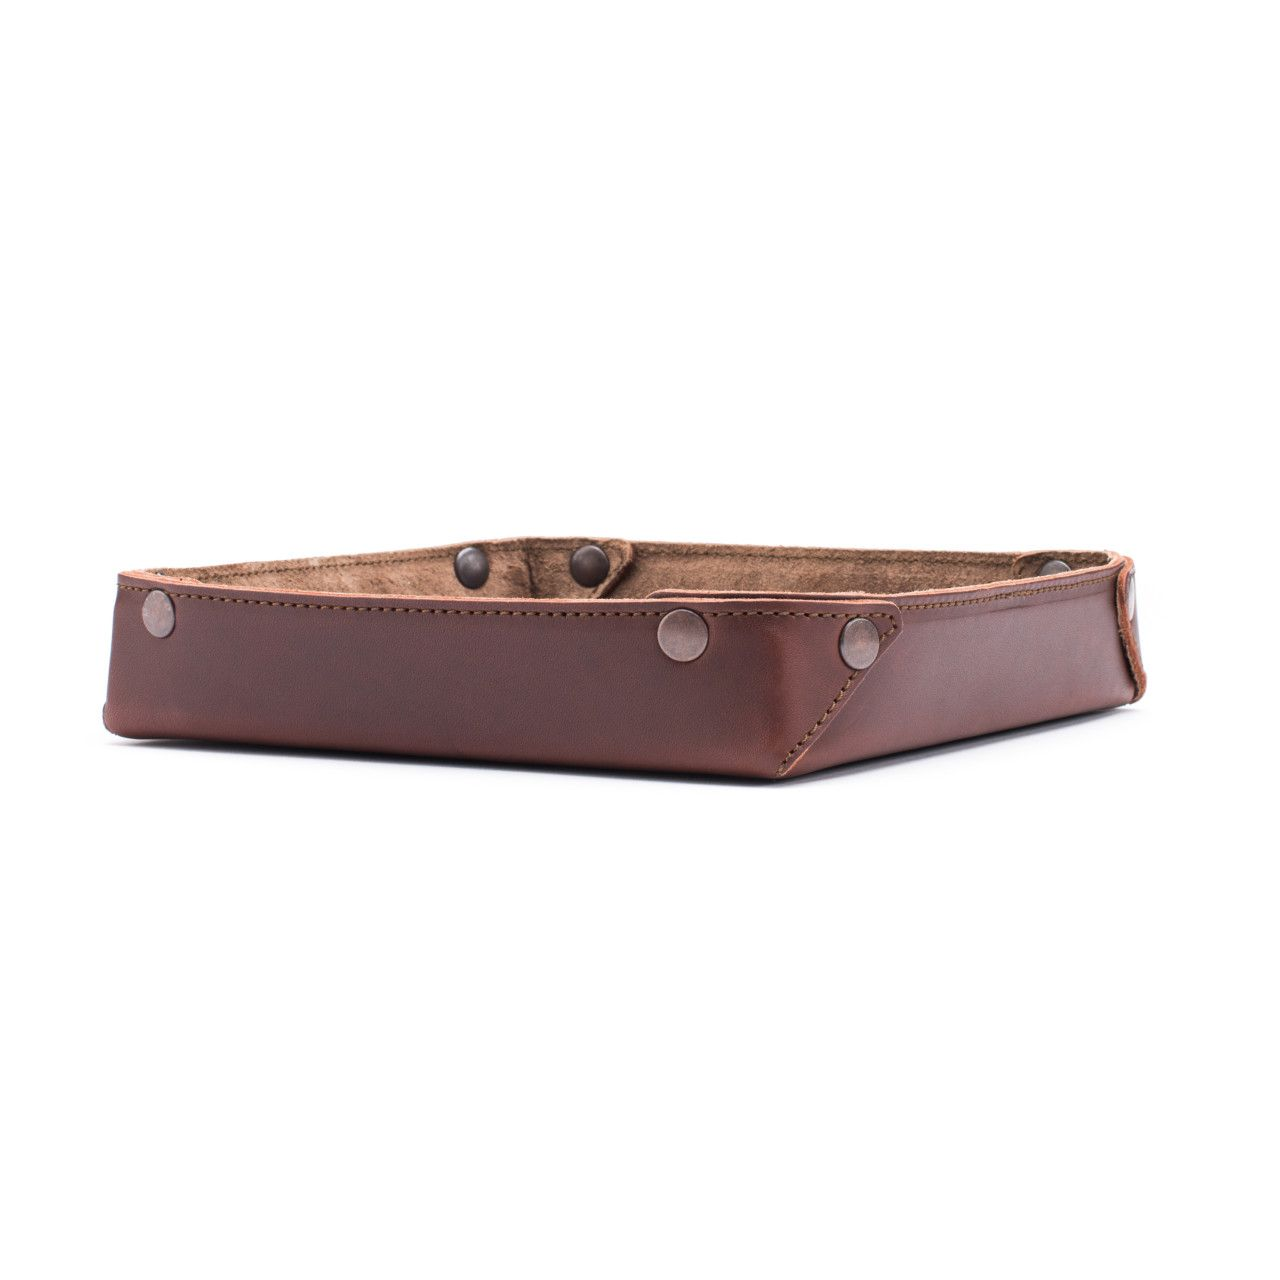 leather valet tray in chestnut leather